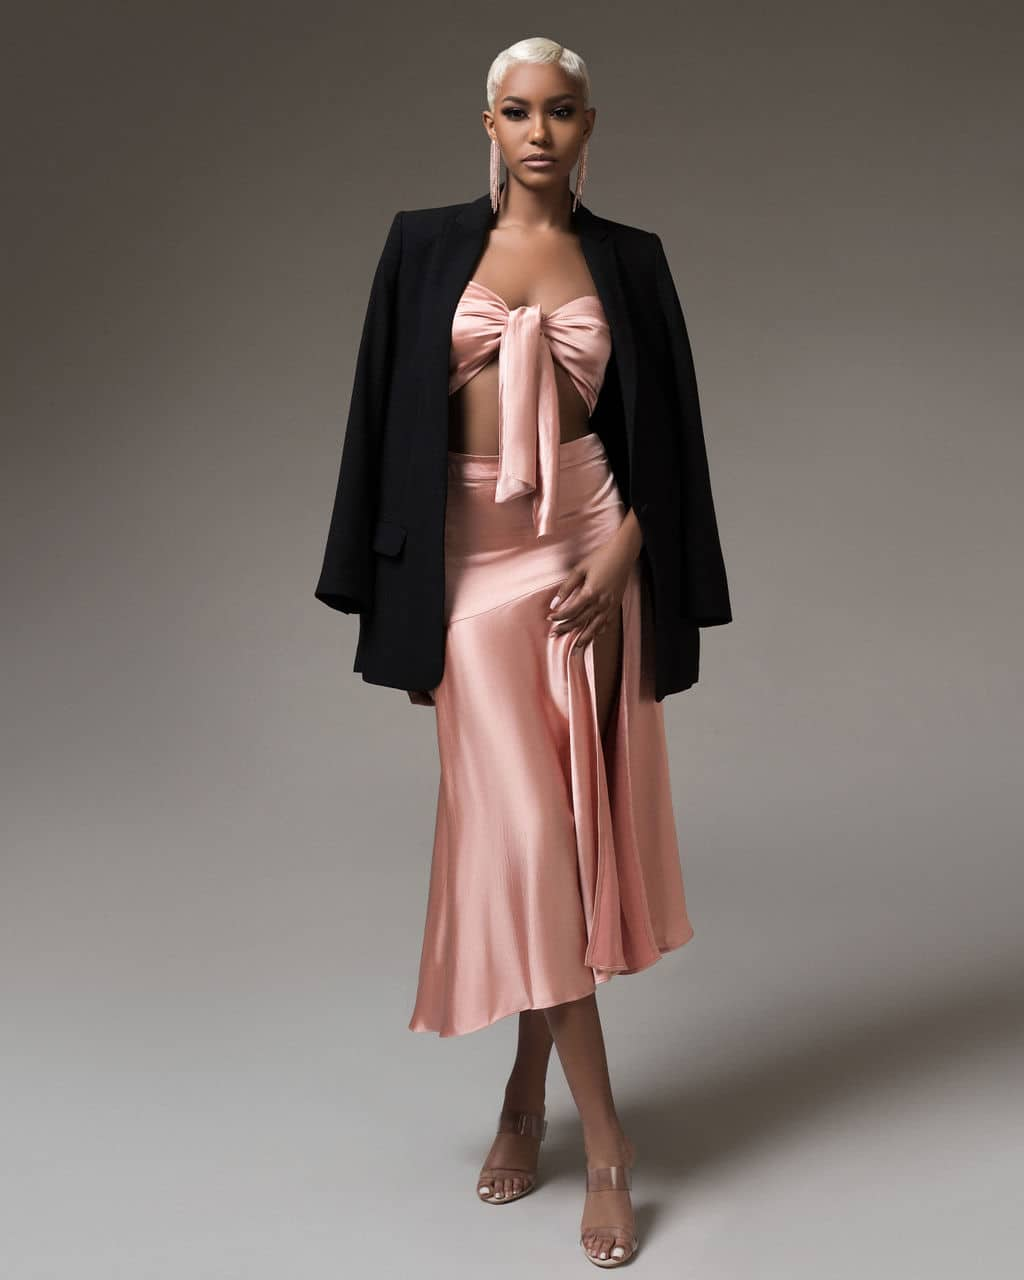 Peach Blush Pink Marilyn High Slit Satin Skirt & Tie Front Satin Top Set For Fall Winter Spring Summer